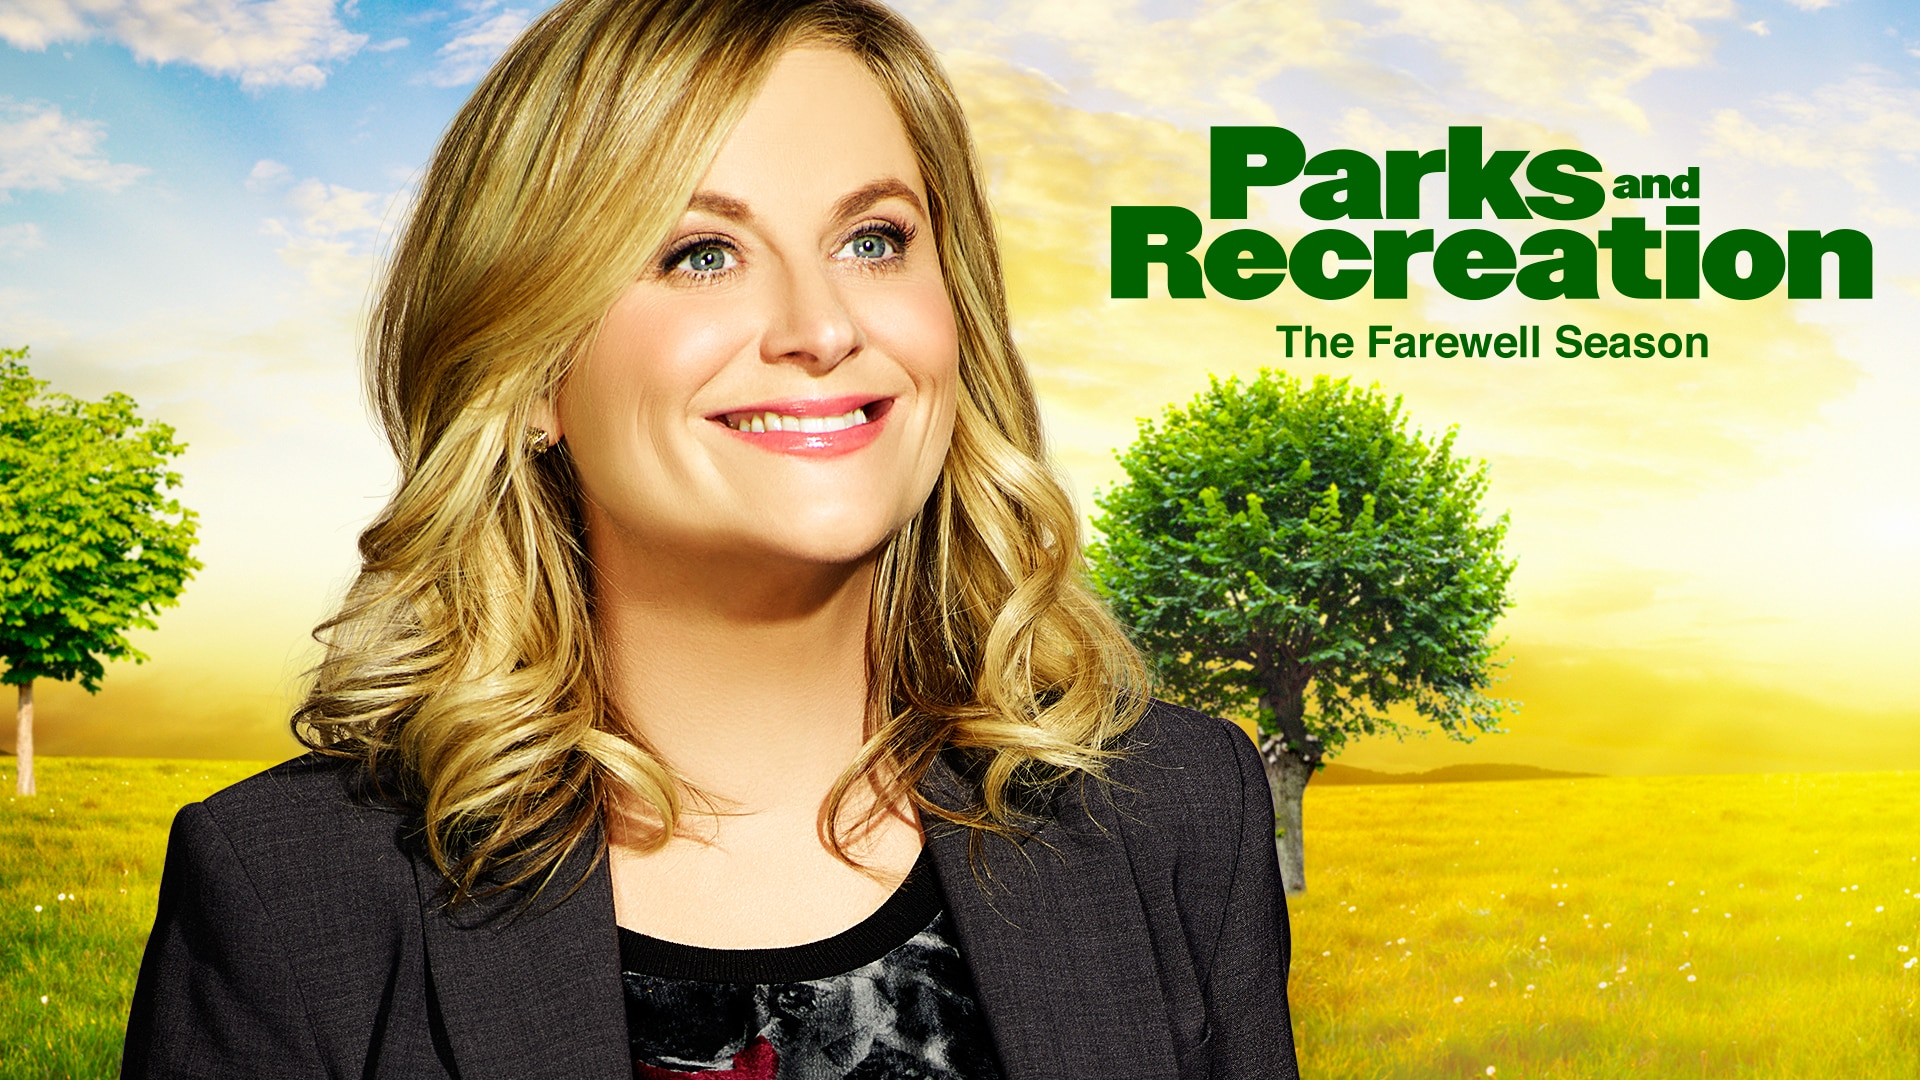 Parks and Recreation: Photo Galleries - NBC.com